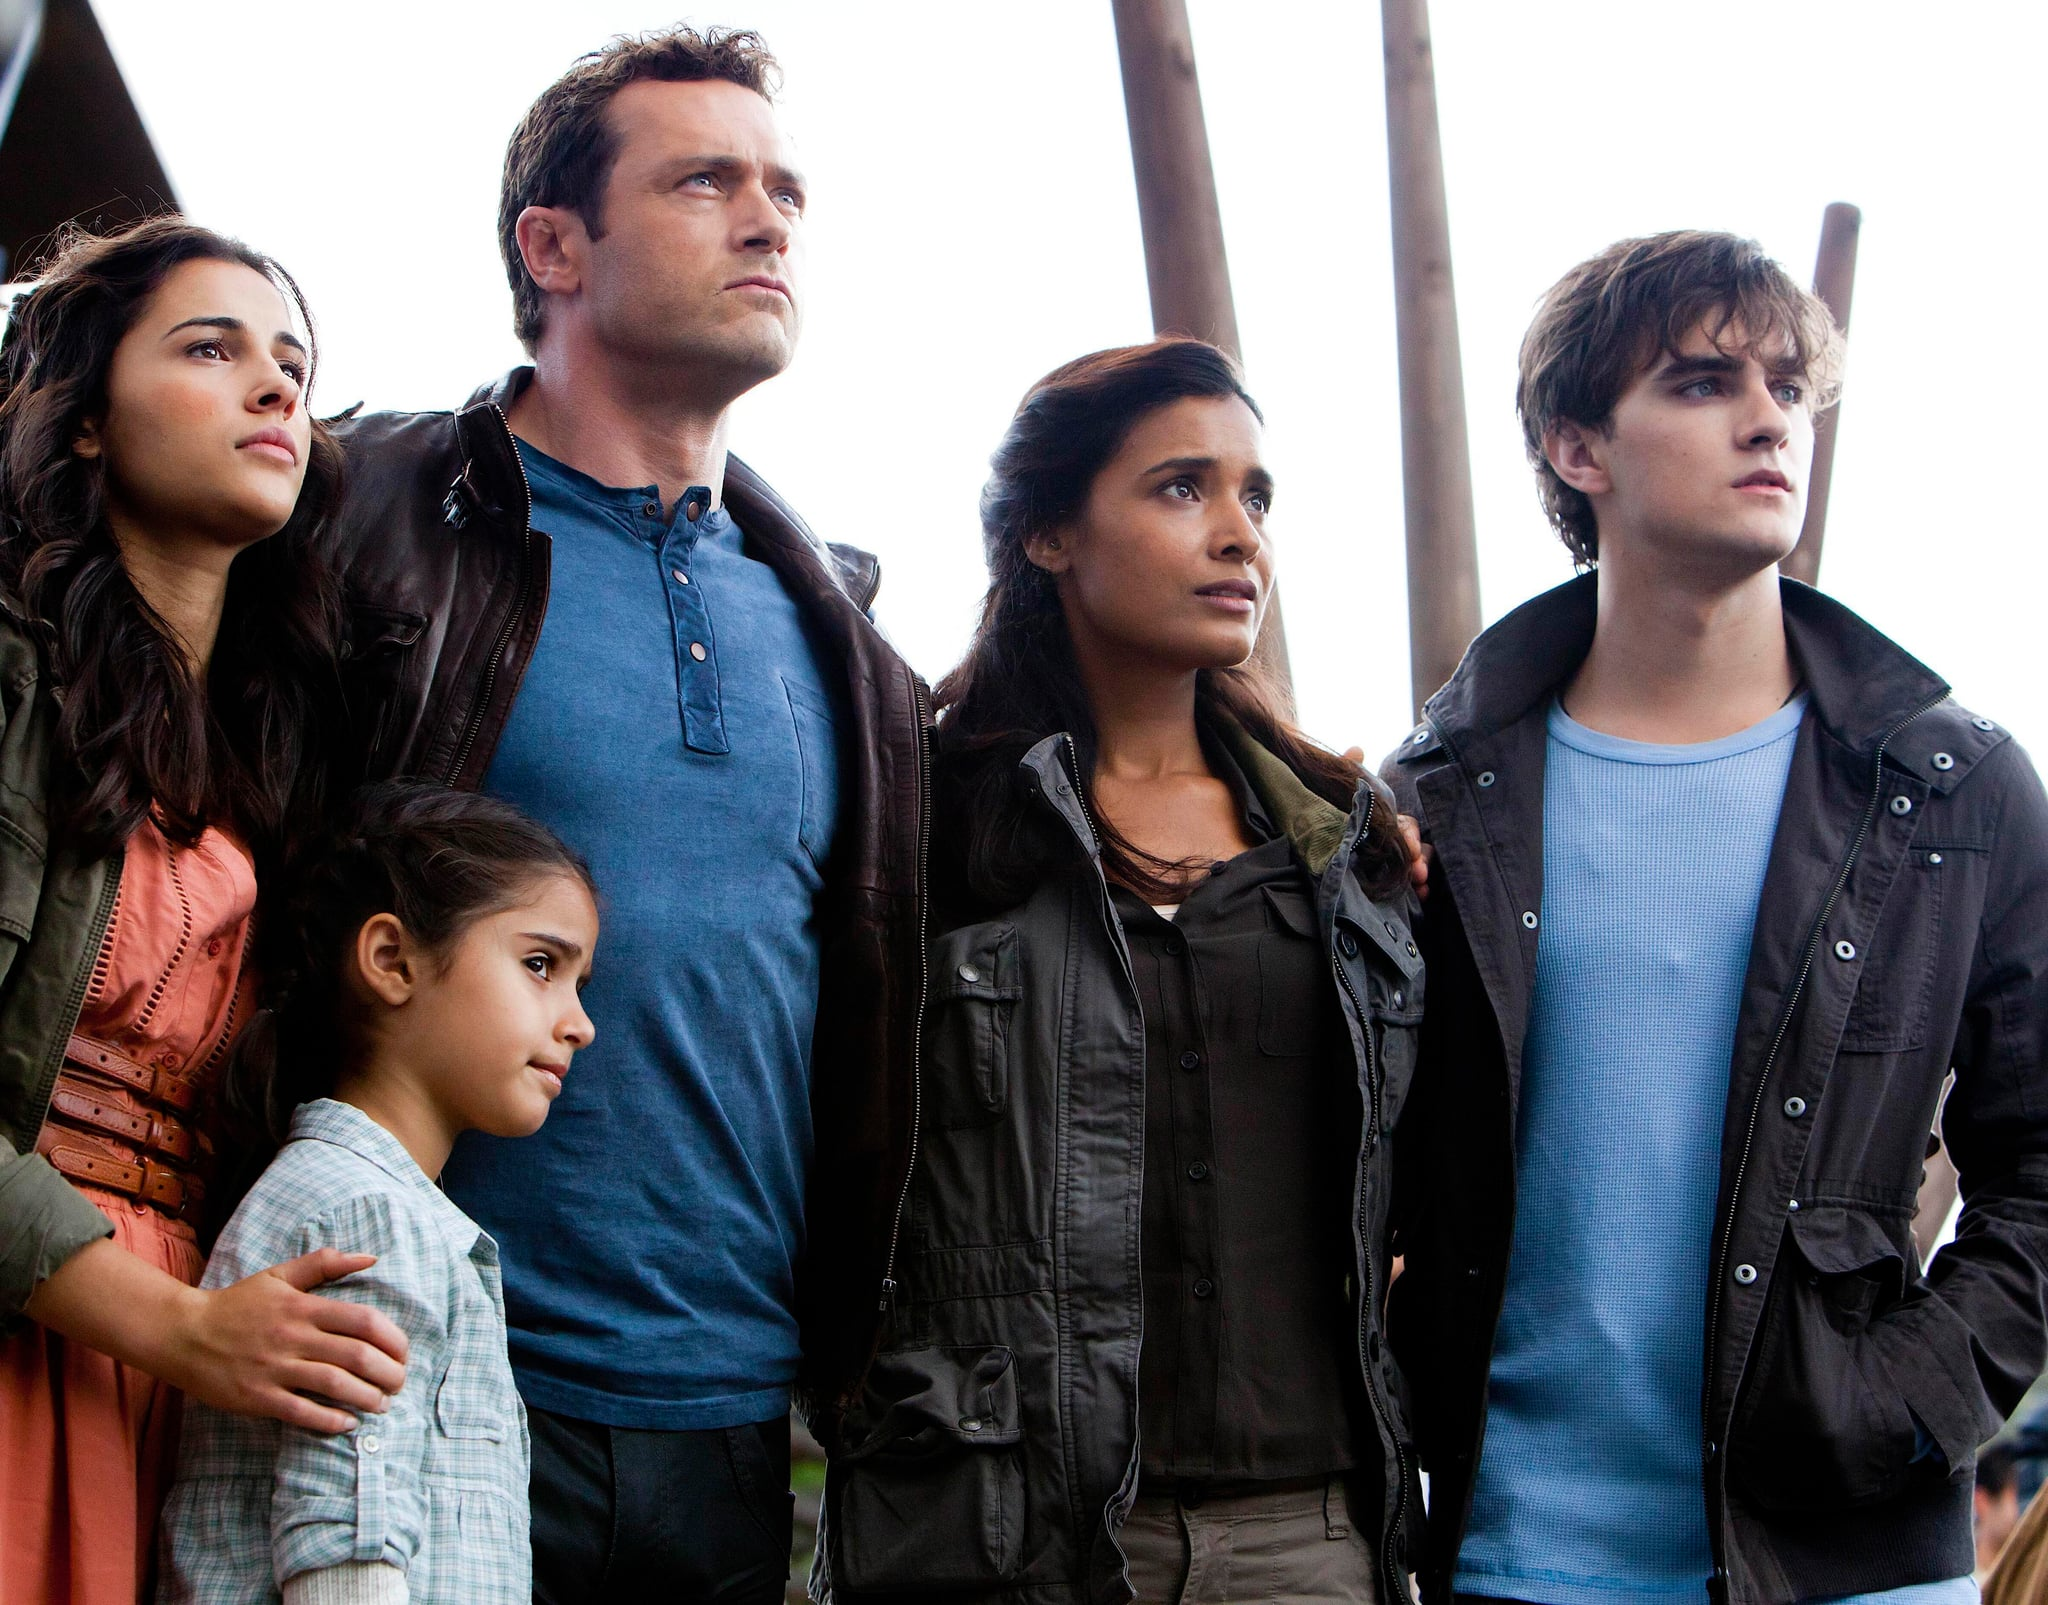 TERRA NOVA, (from left): Naomi Scott, Alana Mansour, Jason O'Mara, Shelley Conn, Landon Liboiron, 'Within', (Season 1, ep. 111, aired Dec. 12, 2011), 2011-. photo: Vince Valitutti / TM and Copyright  20th Century Fox Film Corp. All rights reserved, Courtesy: Everett Collection